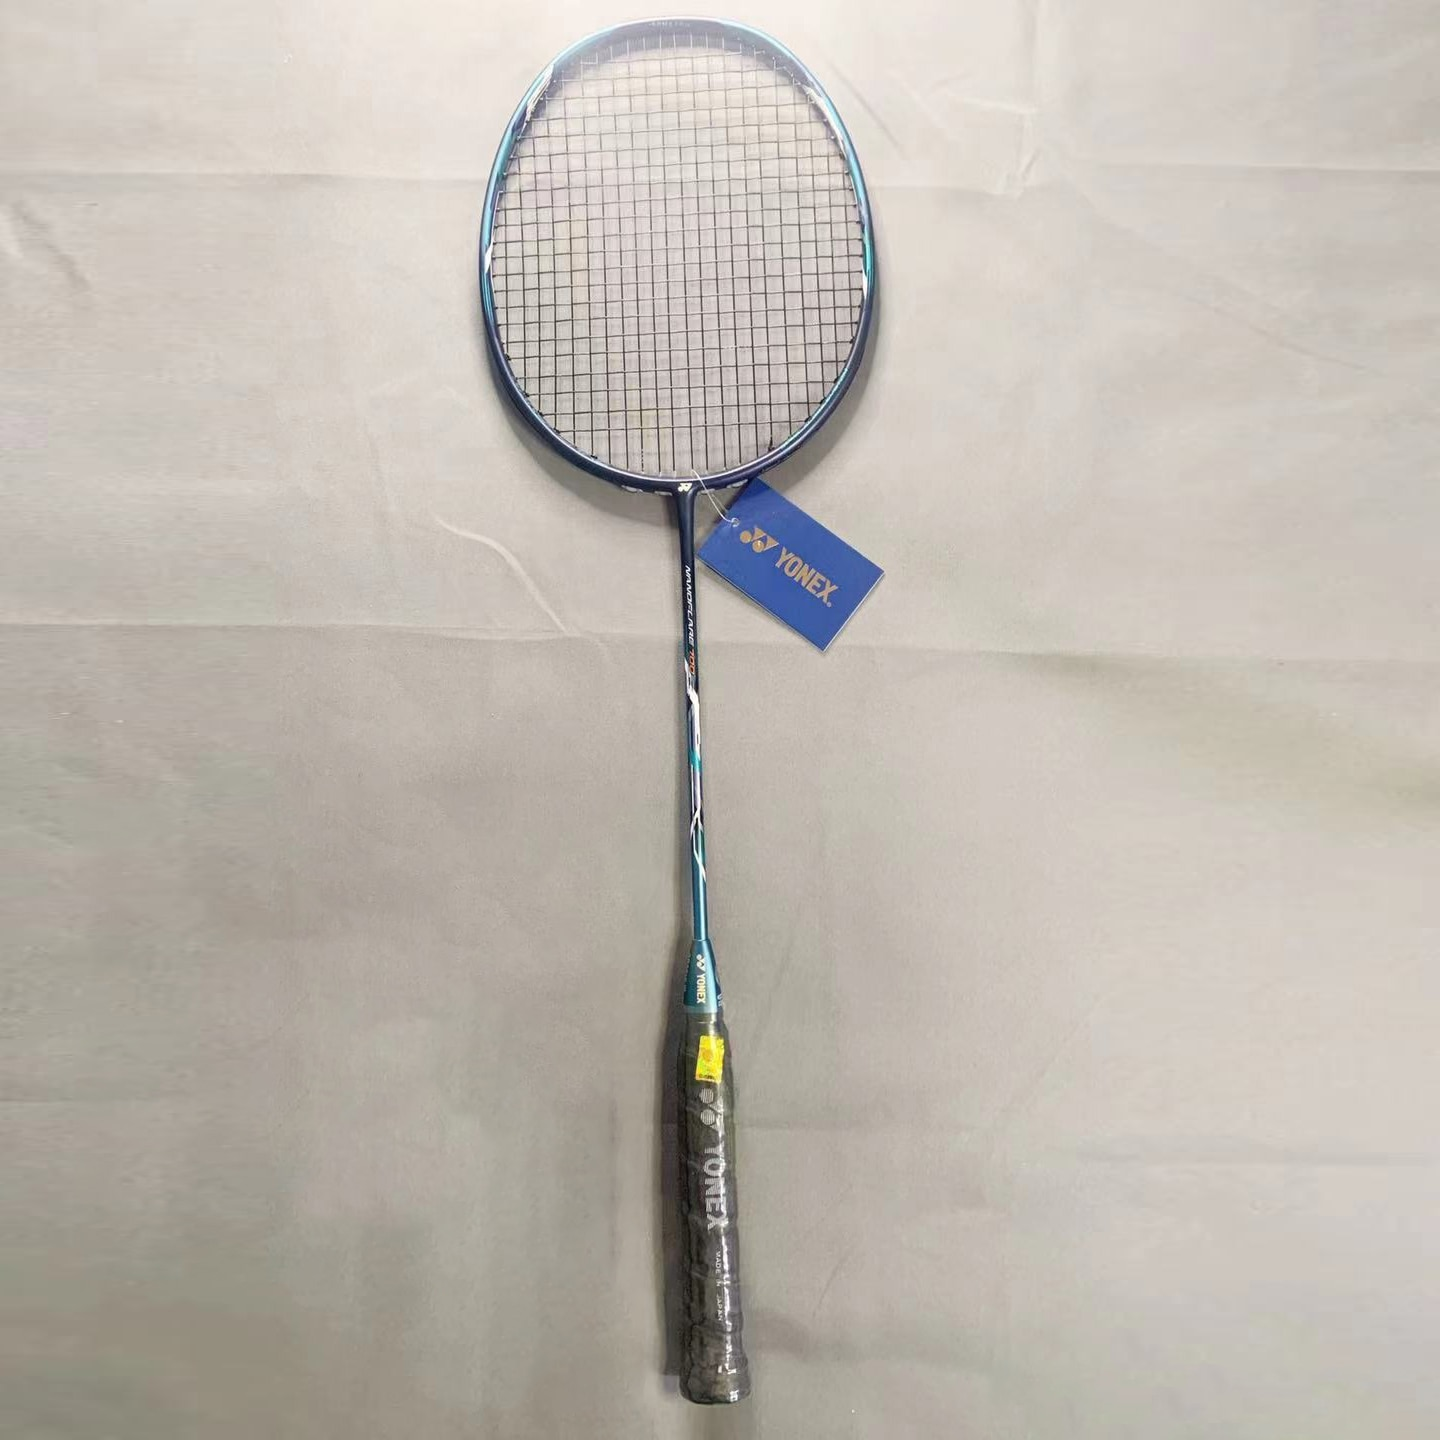 Yonex new badminton racket NF700 black and green full carbon ultra-light and durable offensive badminton racket genuine